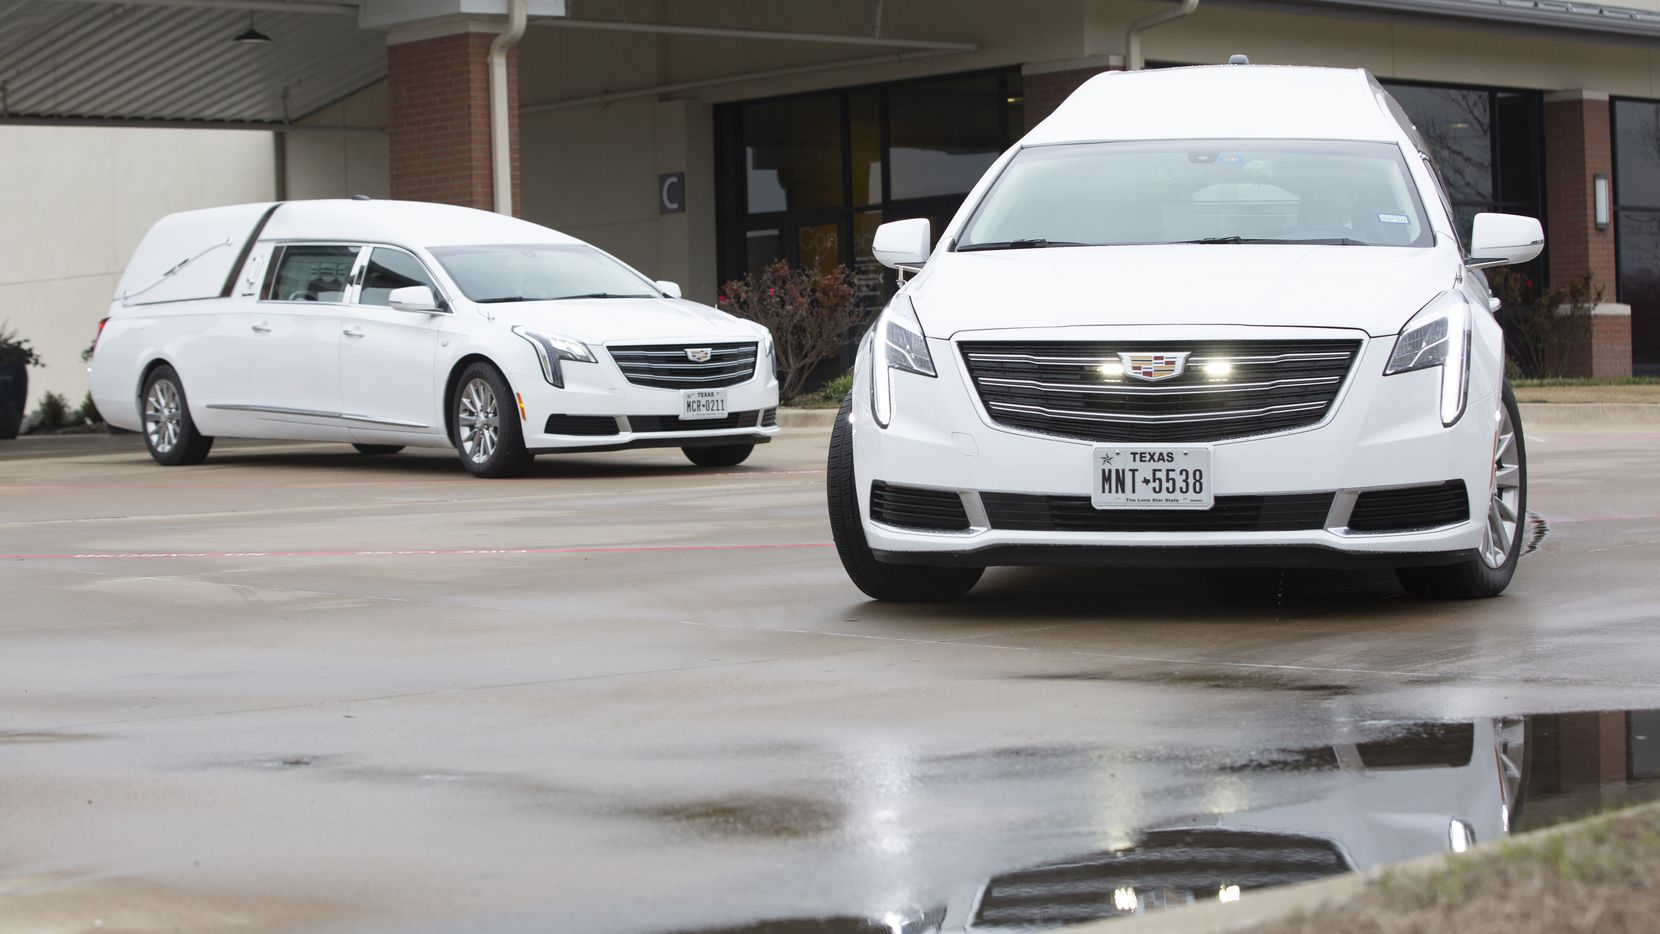 The hearses carrying Deja and Abbaney Matts, the sisters who were found dead in a dorm at Texas A&M-Commerce, leave the funeral service at North Cities United Pentecostal Church in Garland.